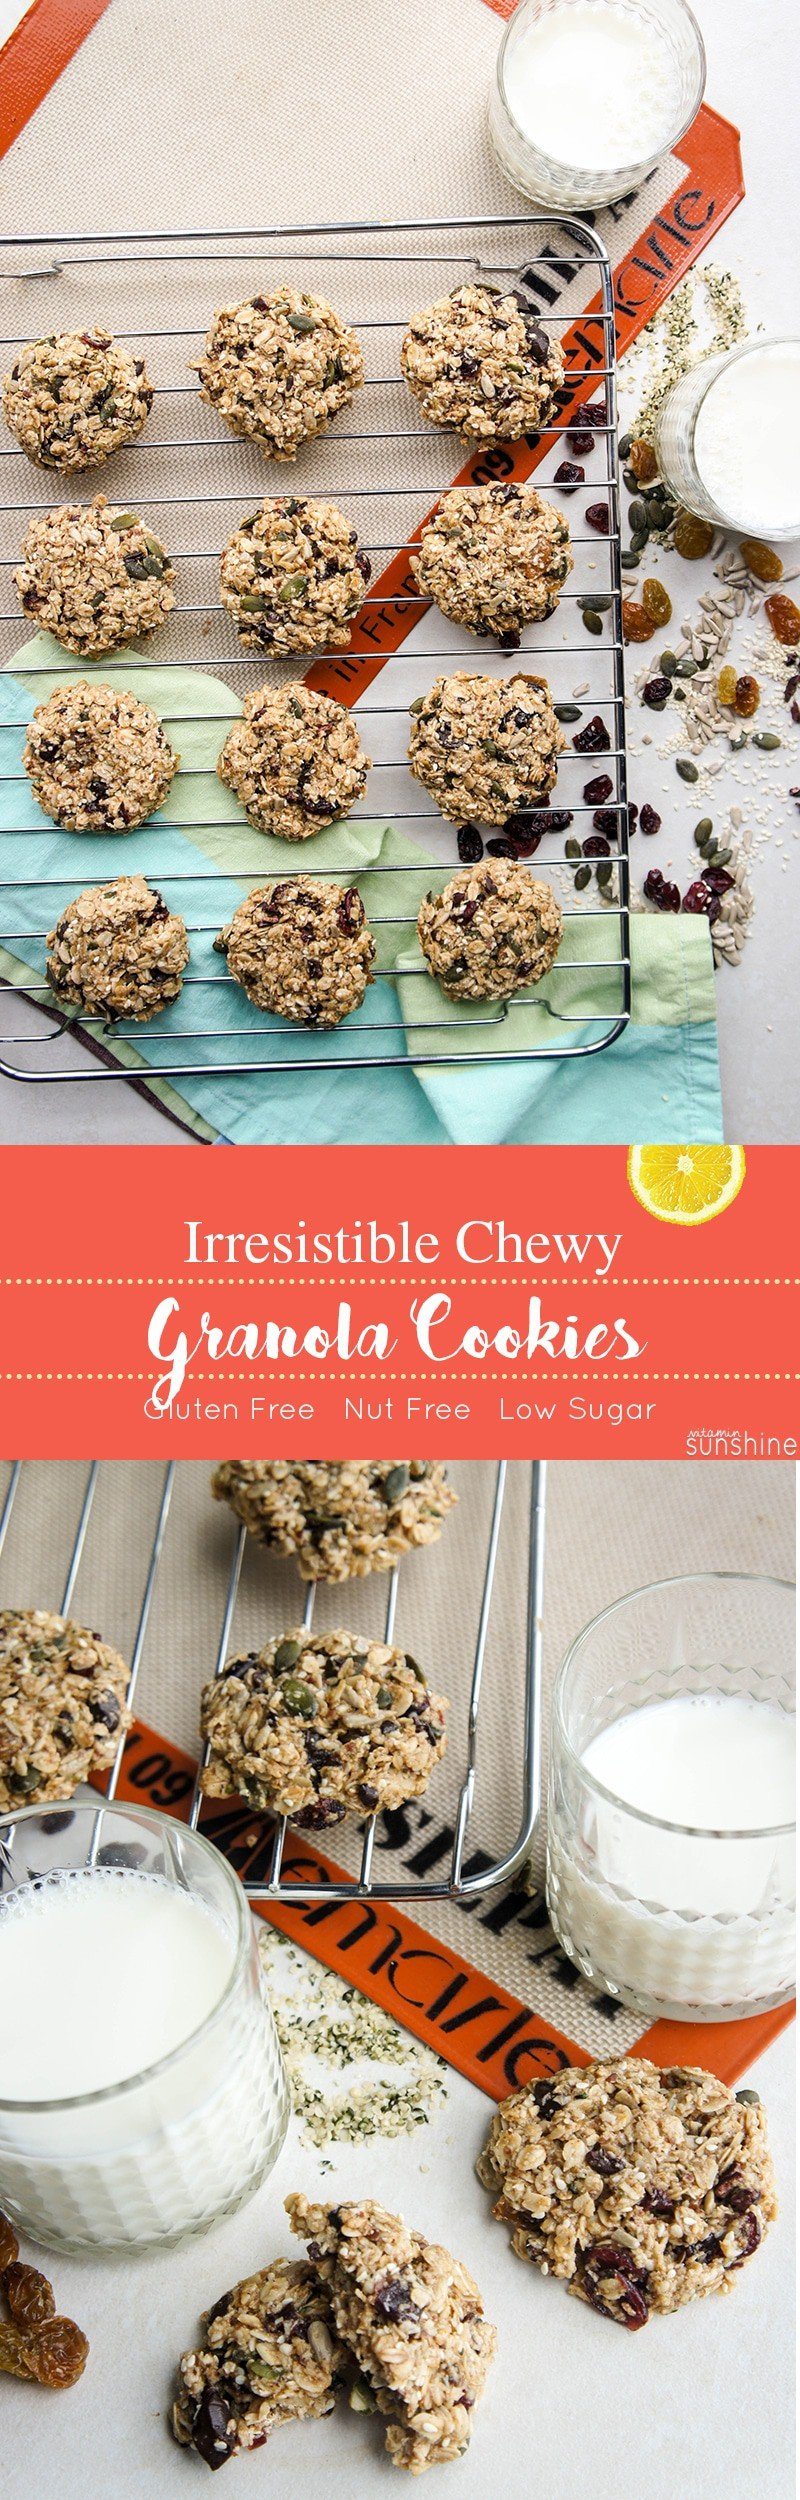 Chewy Granola Cookies / These chewy, nutrient dense cookies are absolutely IRRESISTIBLE! Nut free and gluten free, they are the perfect recipe for sharing.